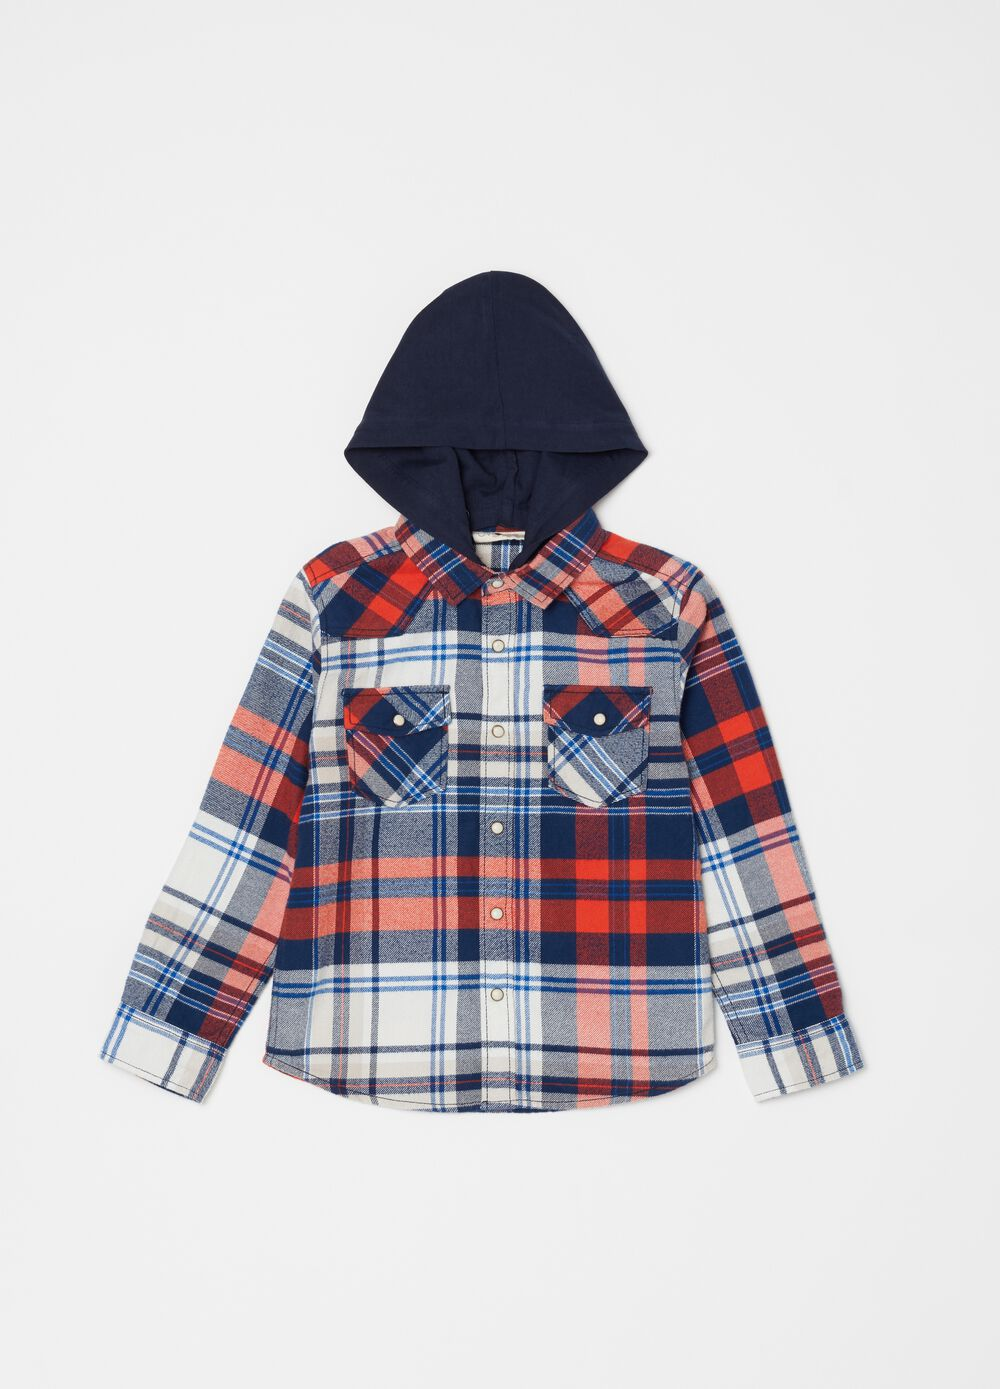 Flannel shirt with hood and pattern